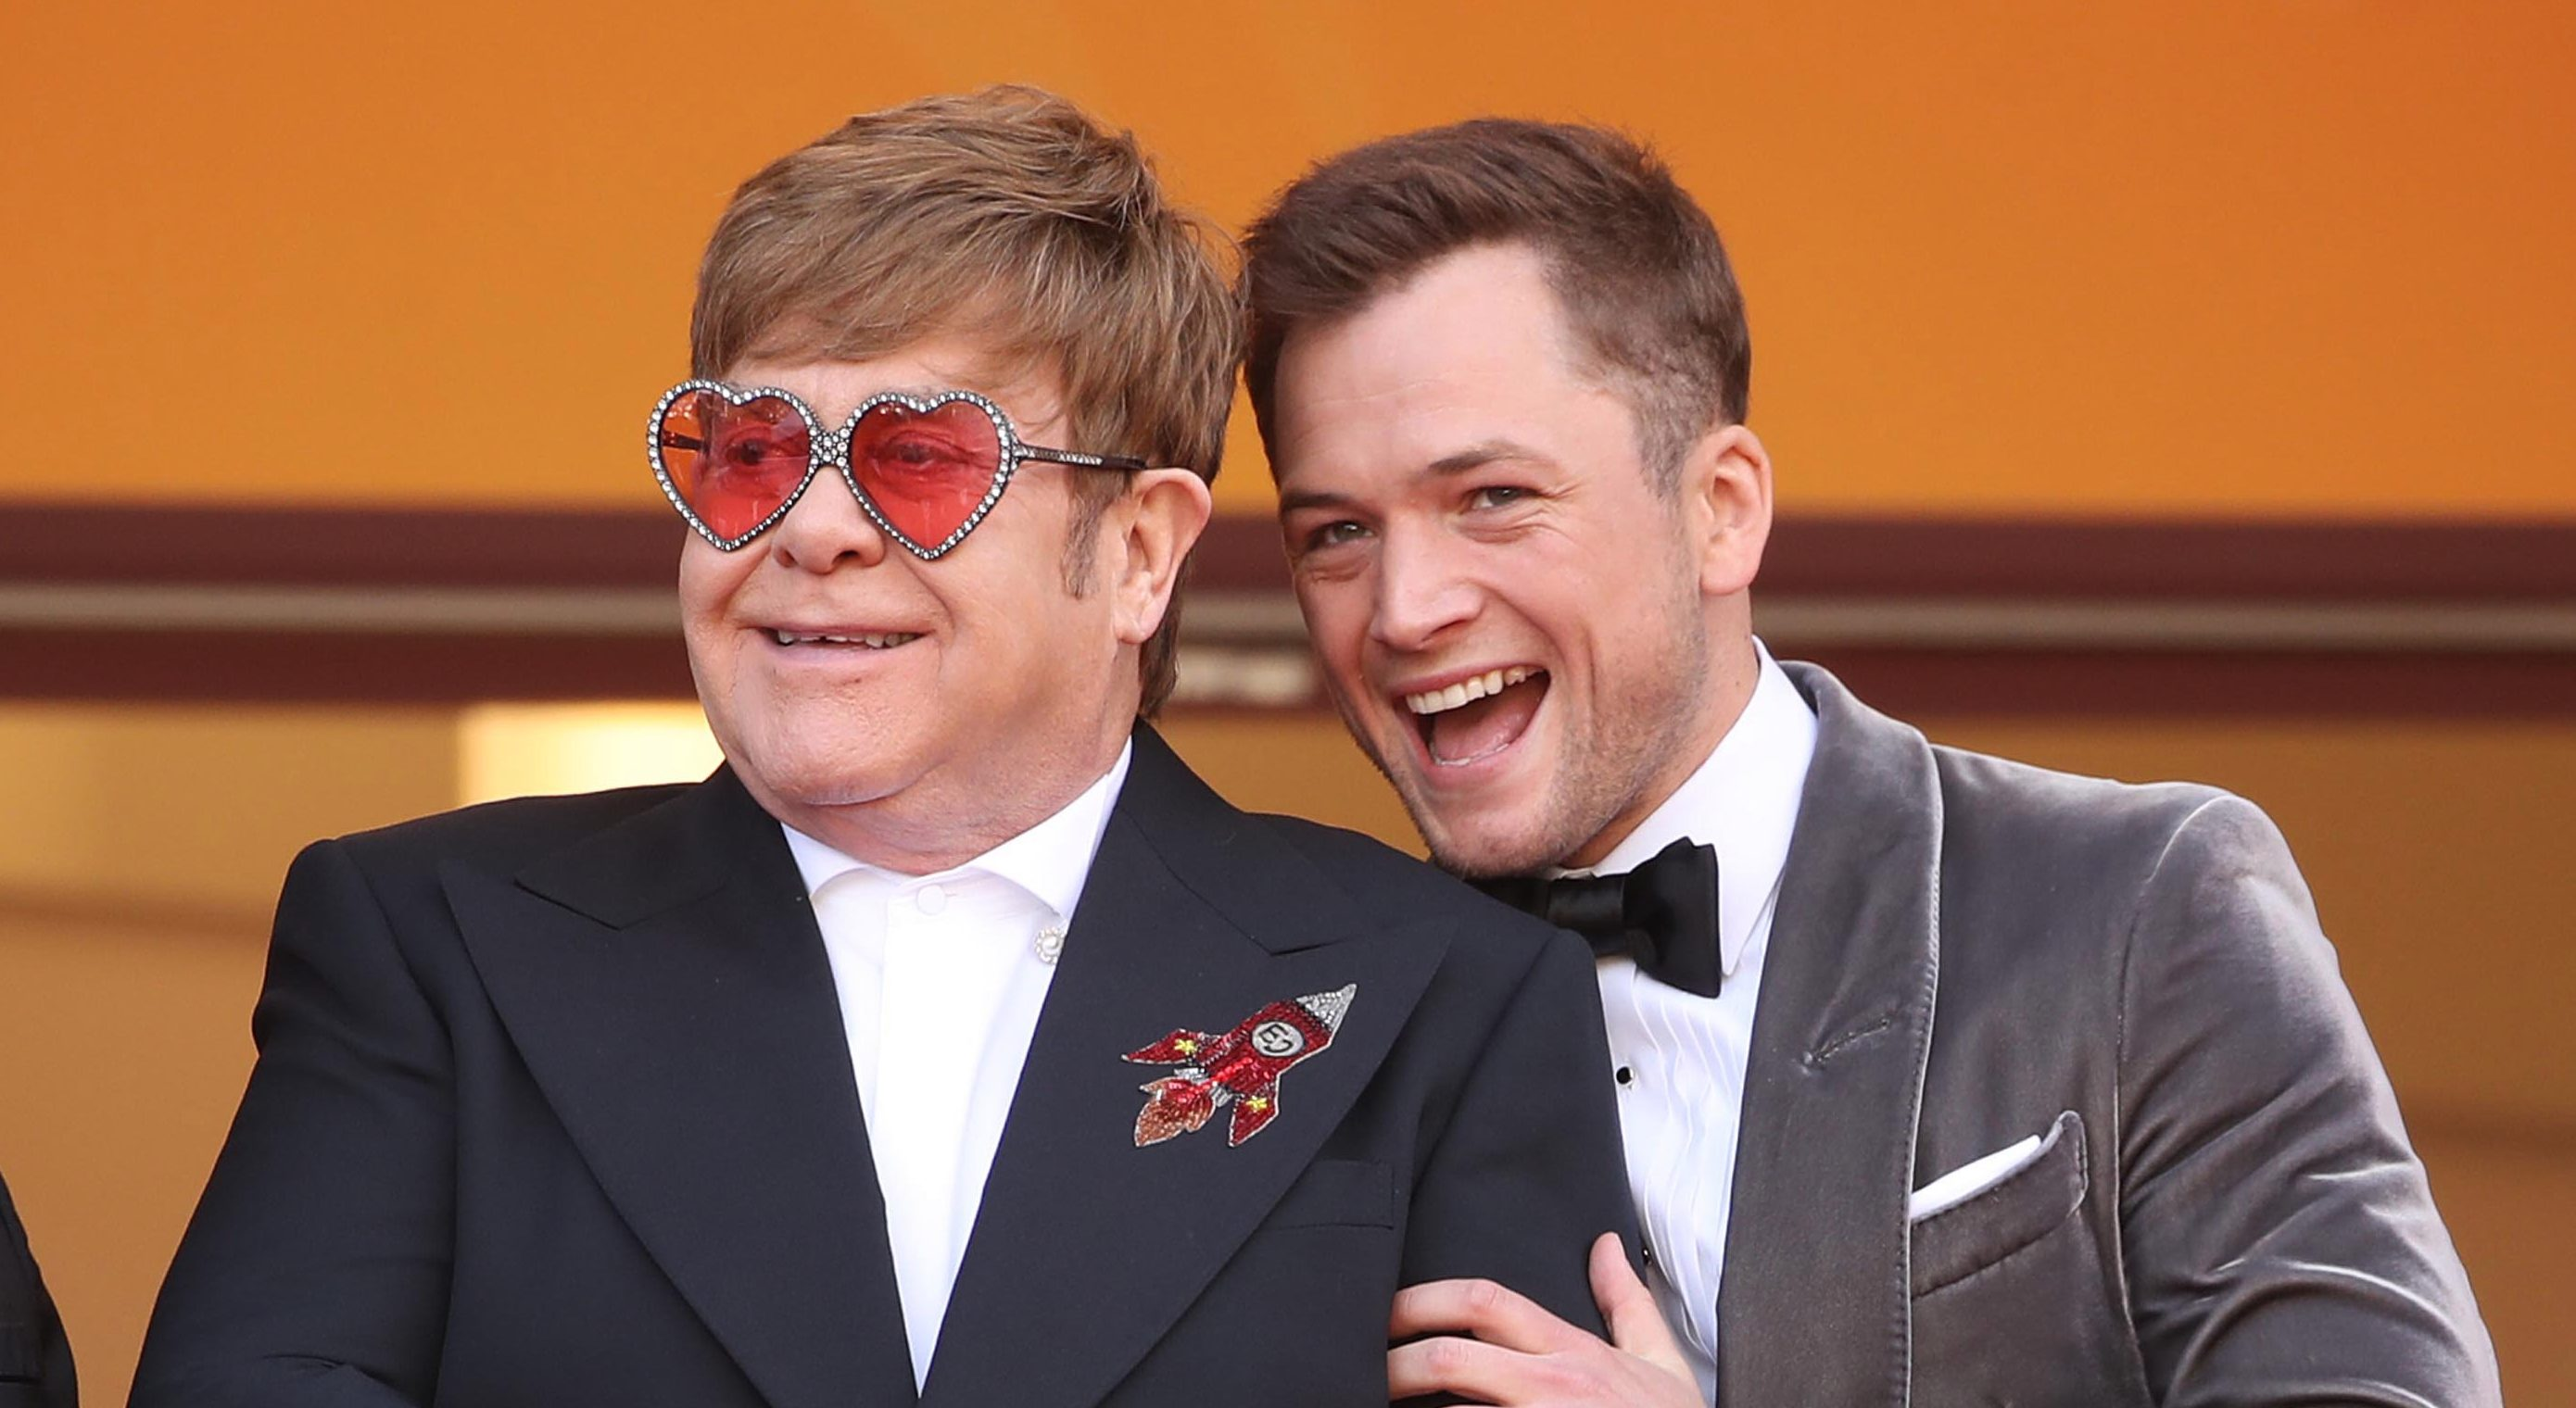 Taron Egerton busted by Elton John's security while raiding singer's fridge